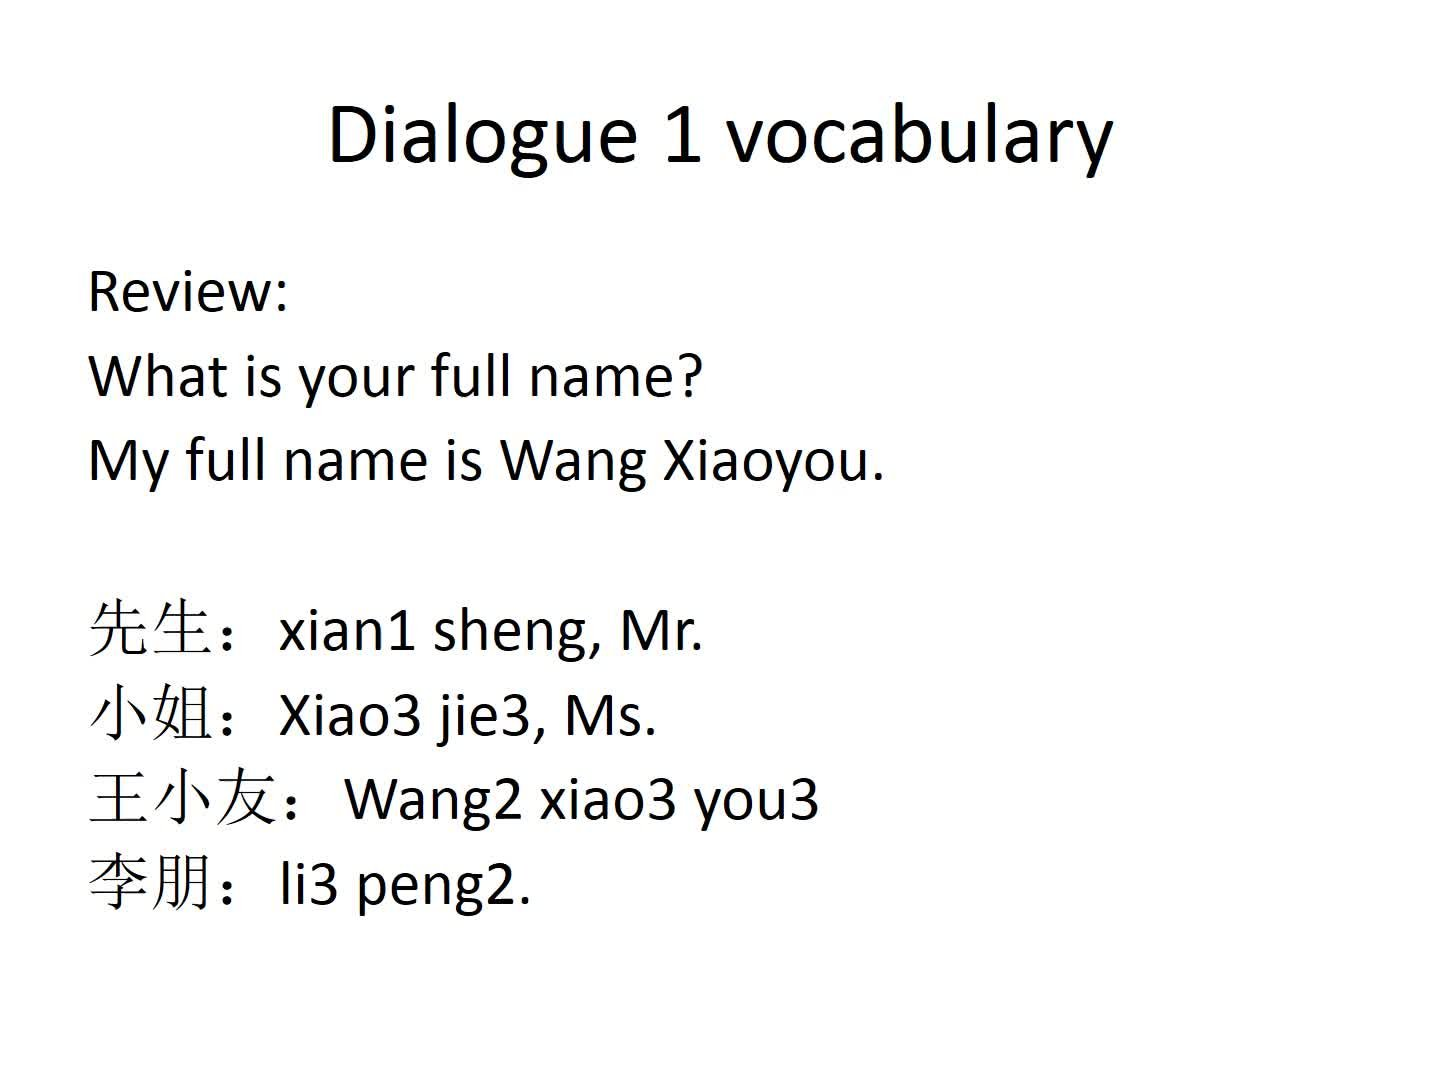 Mandarin Chinese Lesson 1 Dialogue 1 Greetings Hong Zeng Skillshare